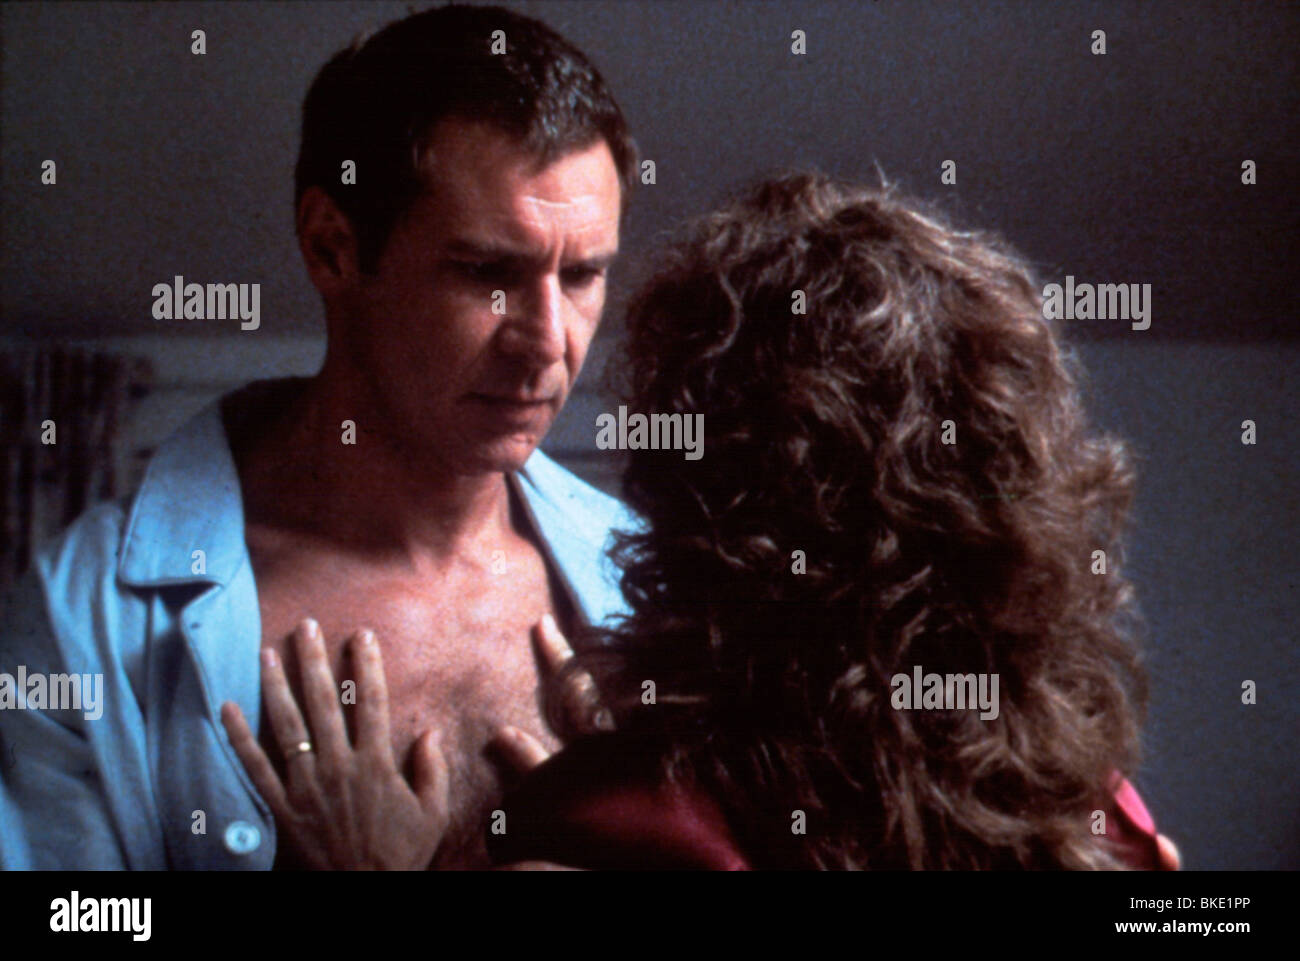 presumed innocent 1990 harrison ford bonnie bedelia pri 003 - Presumed Innocent Movie